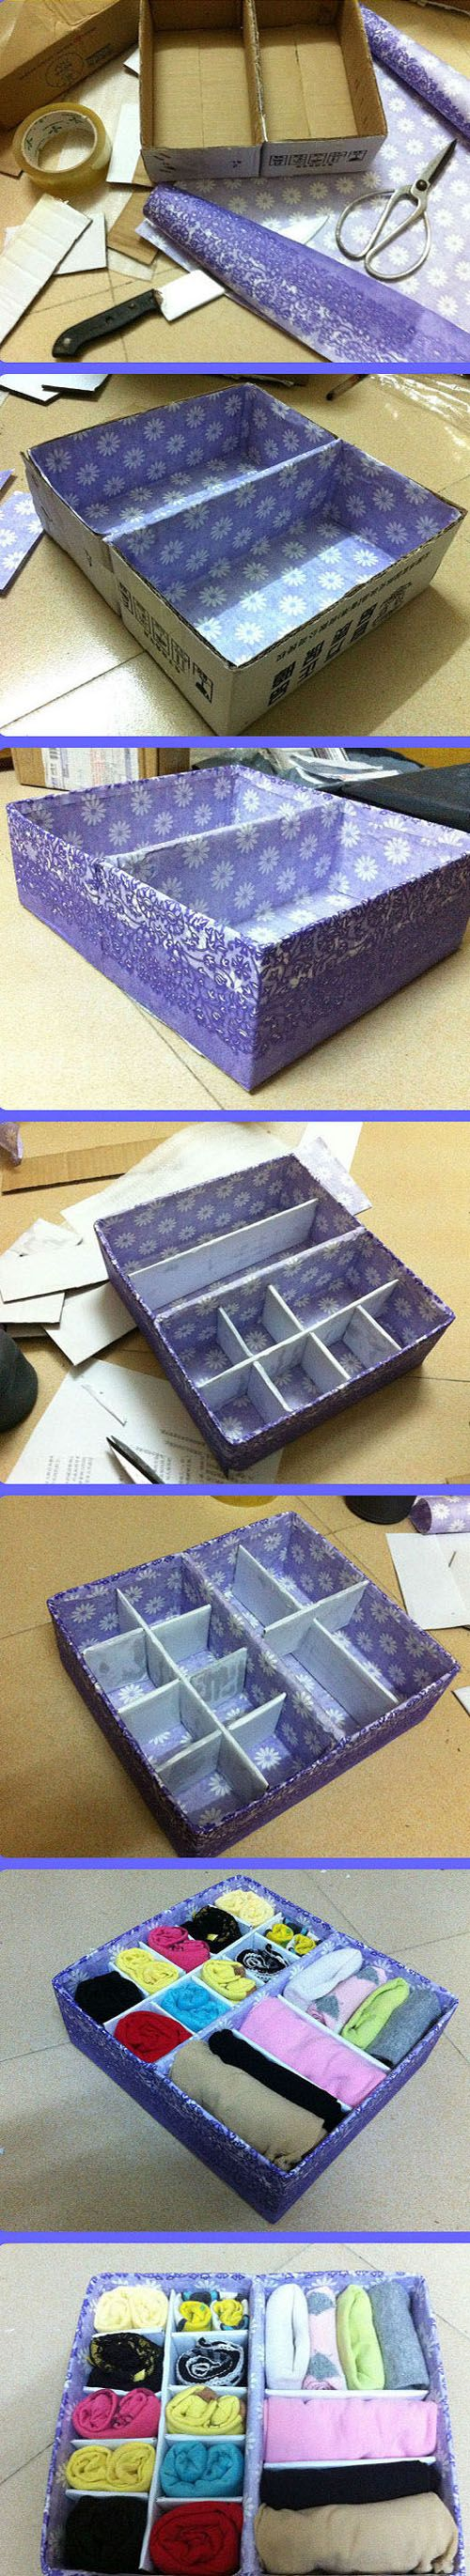 Diy Carton Container- I have been doing this for years with contact paper. Scrap book paper offers much more variety.